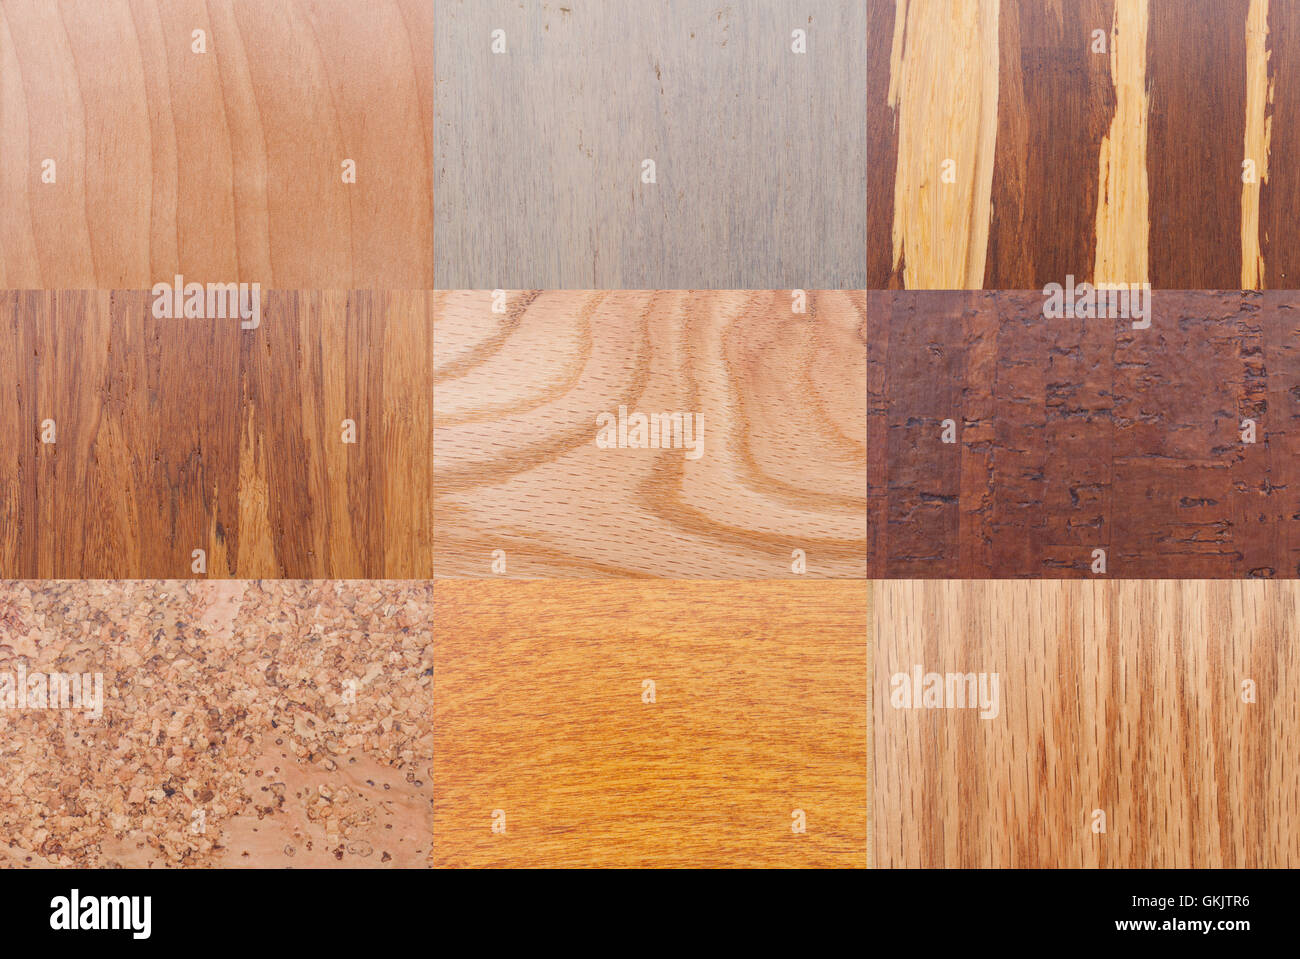 Various Tree Type Wood Grain Patterns And Textures Stock